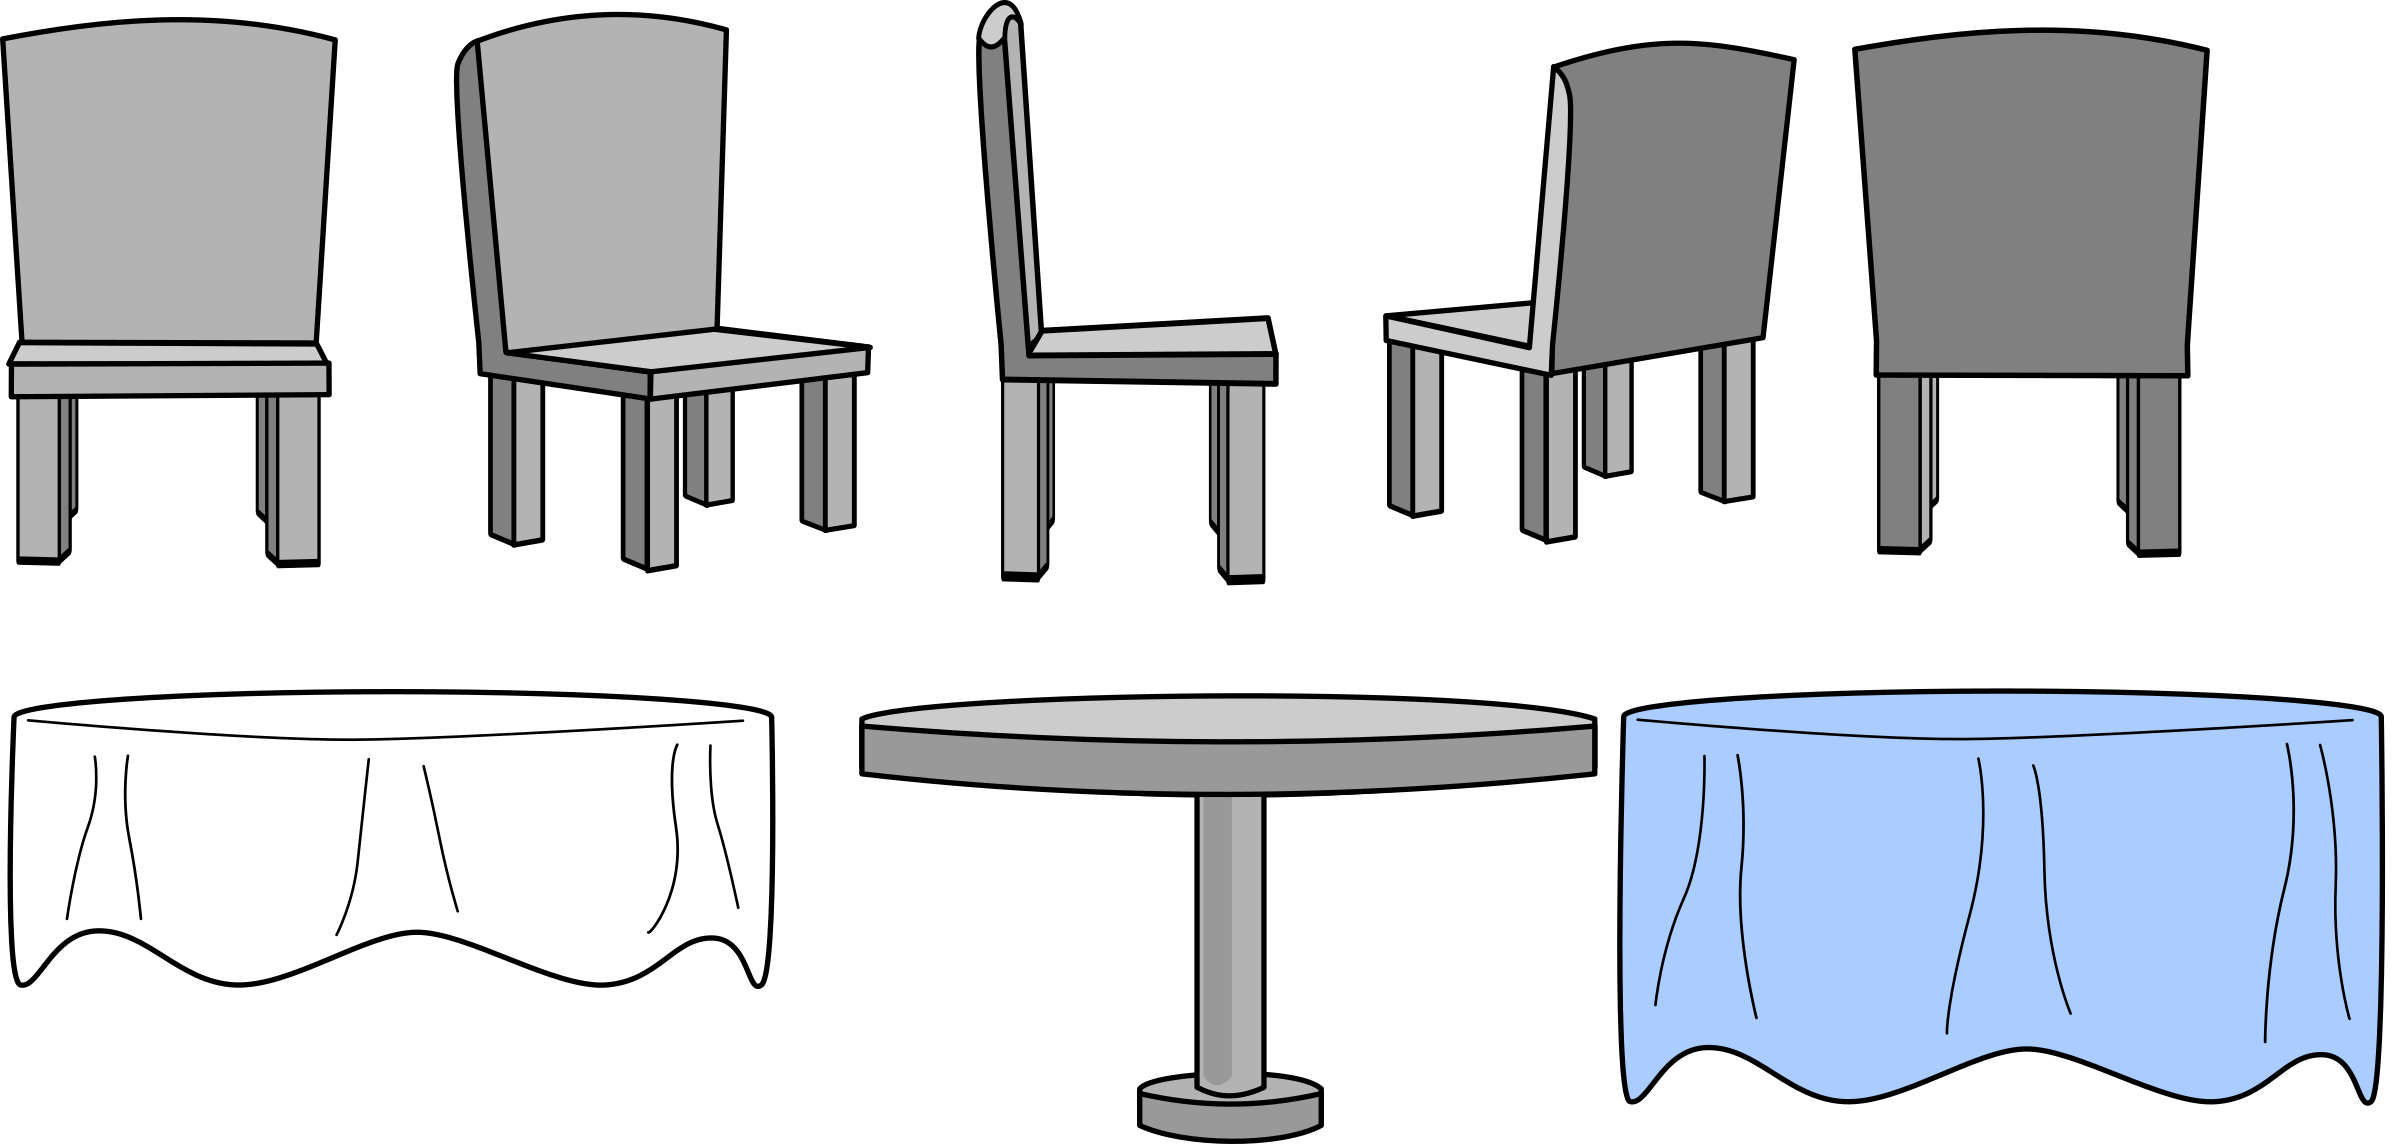 Furniture clipart kitchen furniture. Table and chairs with